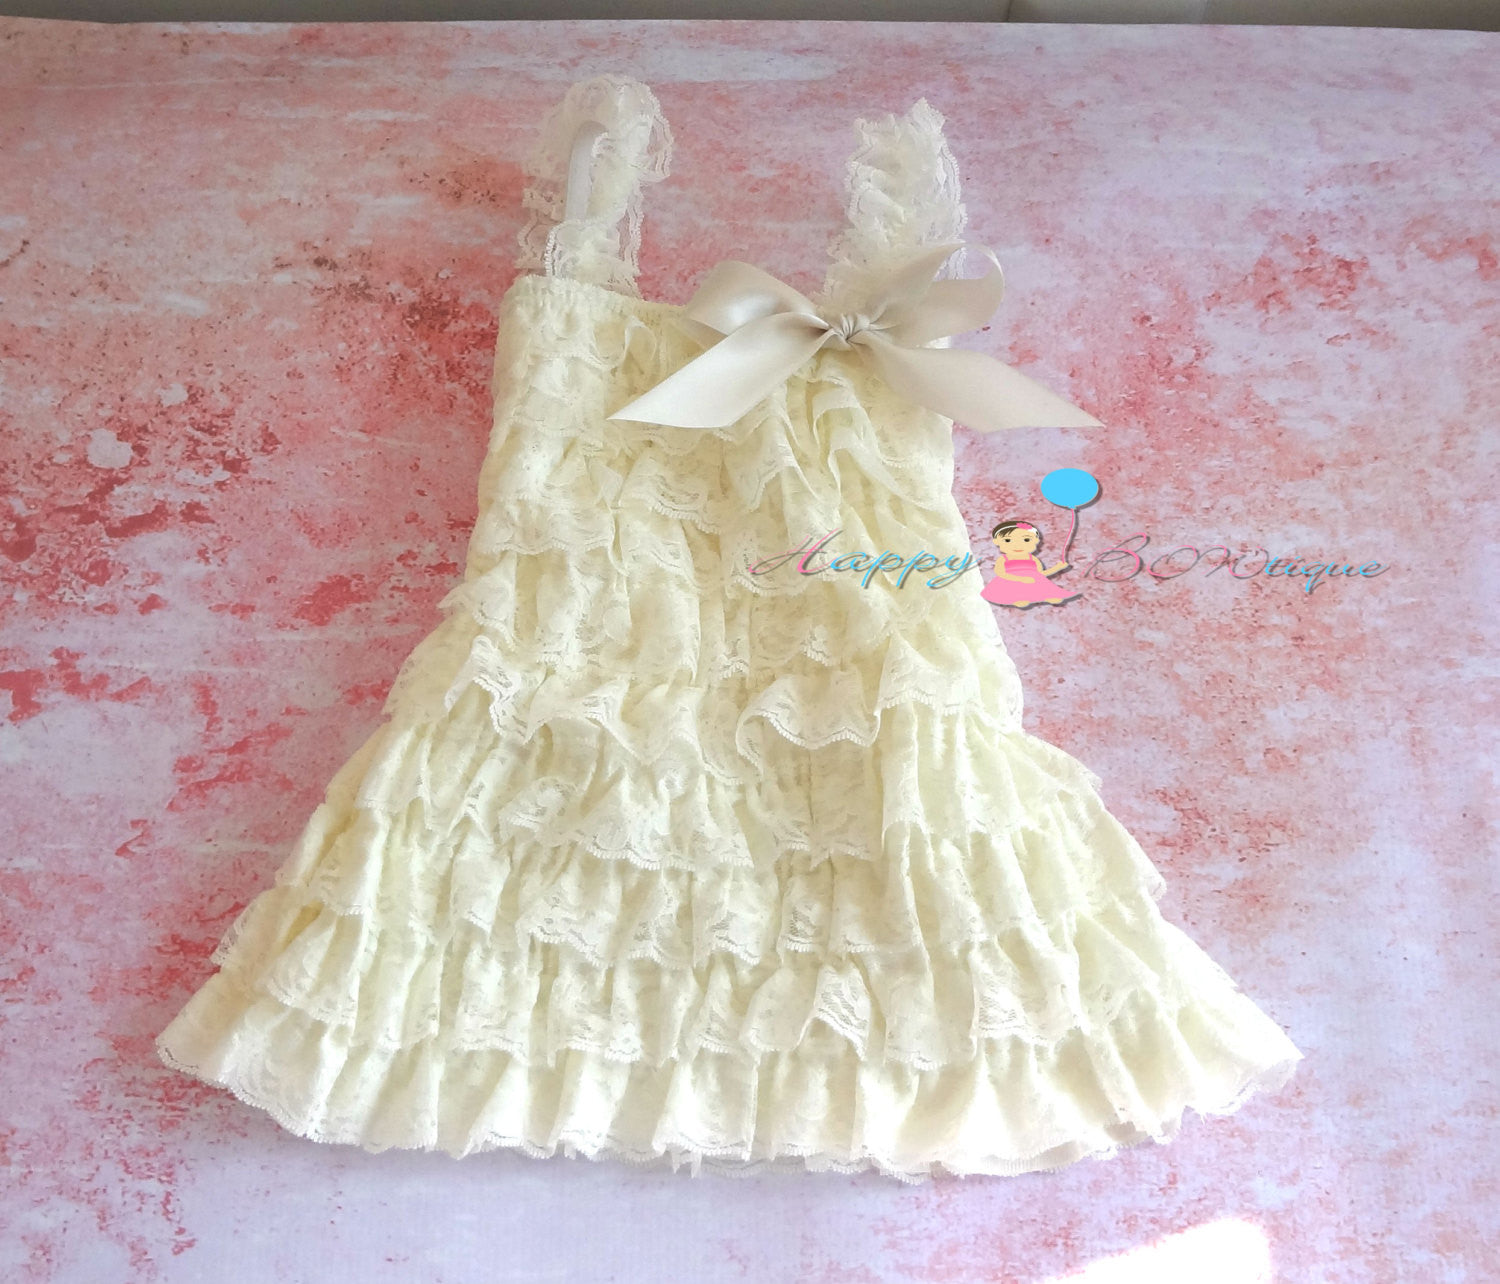 Girl's Ivory Lace Dress/ Ivory Turquoise Raspberry Girl's Dress Set - Happy BOWtique - children's clothing, Baby Girl clothing